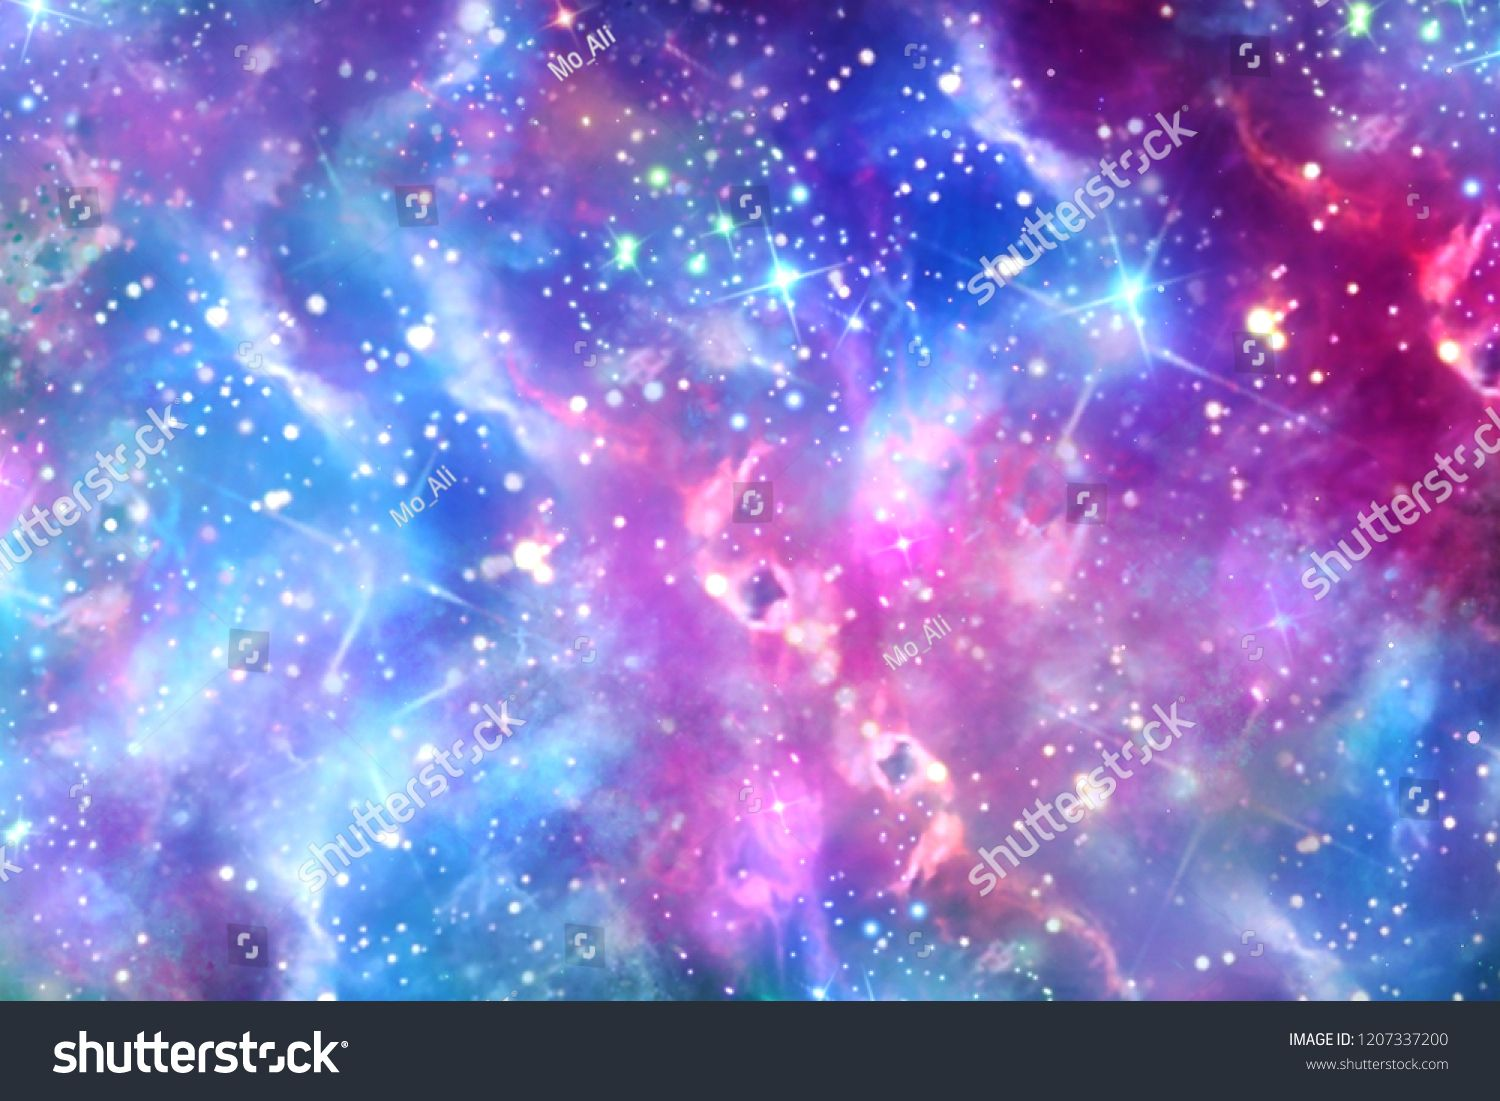 Abstract Colorful Galaxy With Bright Stars Backgroundgalaxy Colorful Abstract Background Space Backgrounds Abstract Star Background